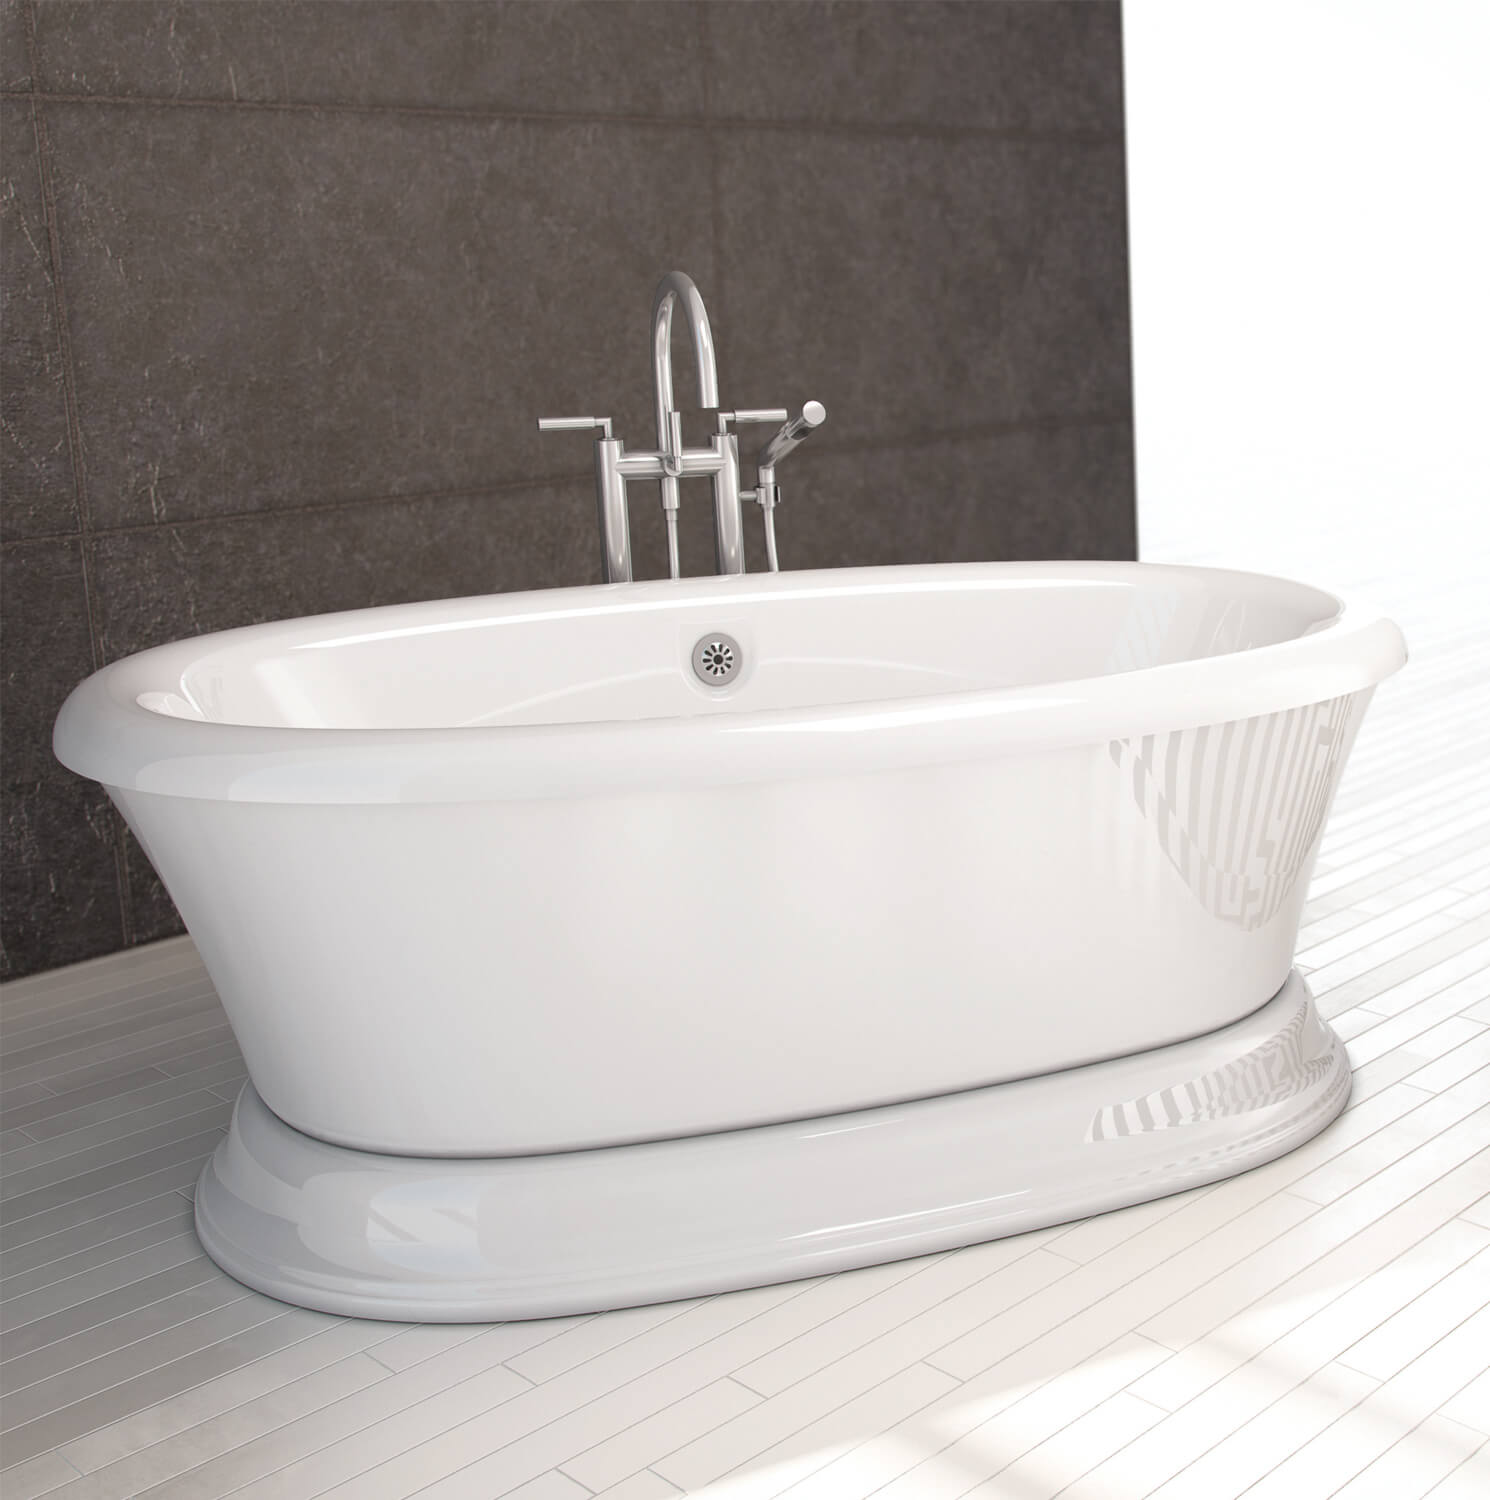 Two person pedestal air jet tub | BainUltra Naos 7240